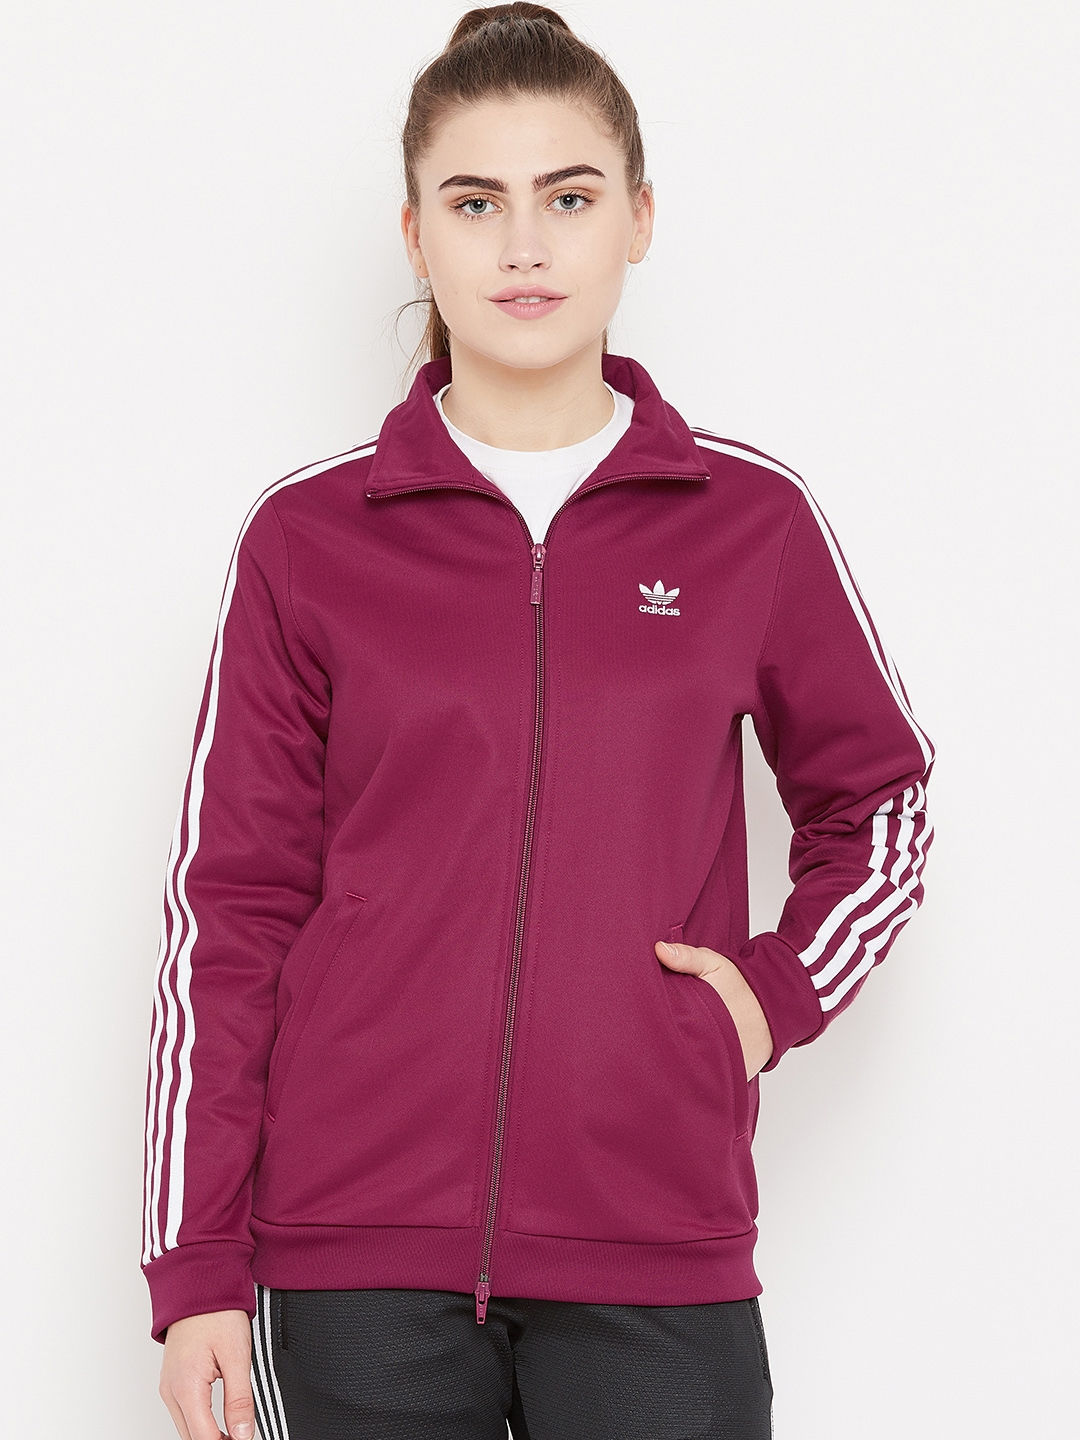 37a320eec68c Buy Adidas Originals Women Burgundy Contemp BB Track Jacket ...